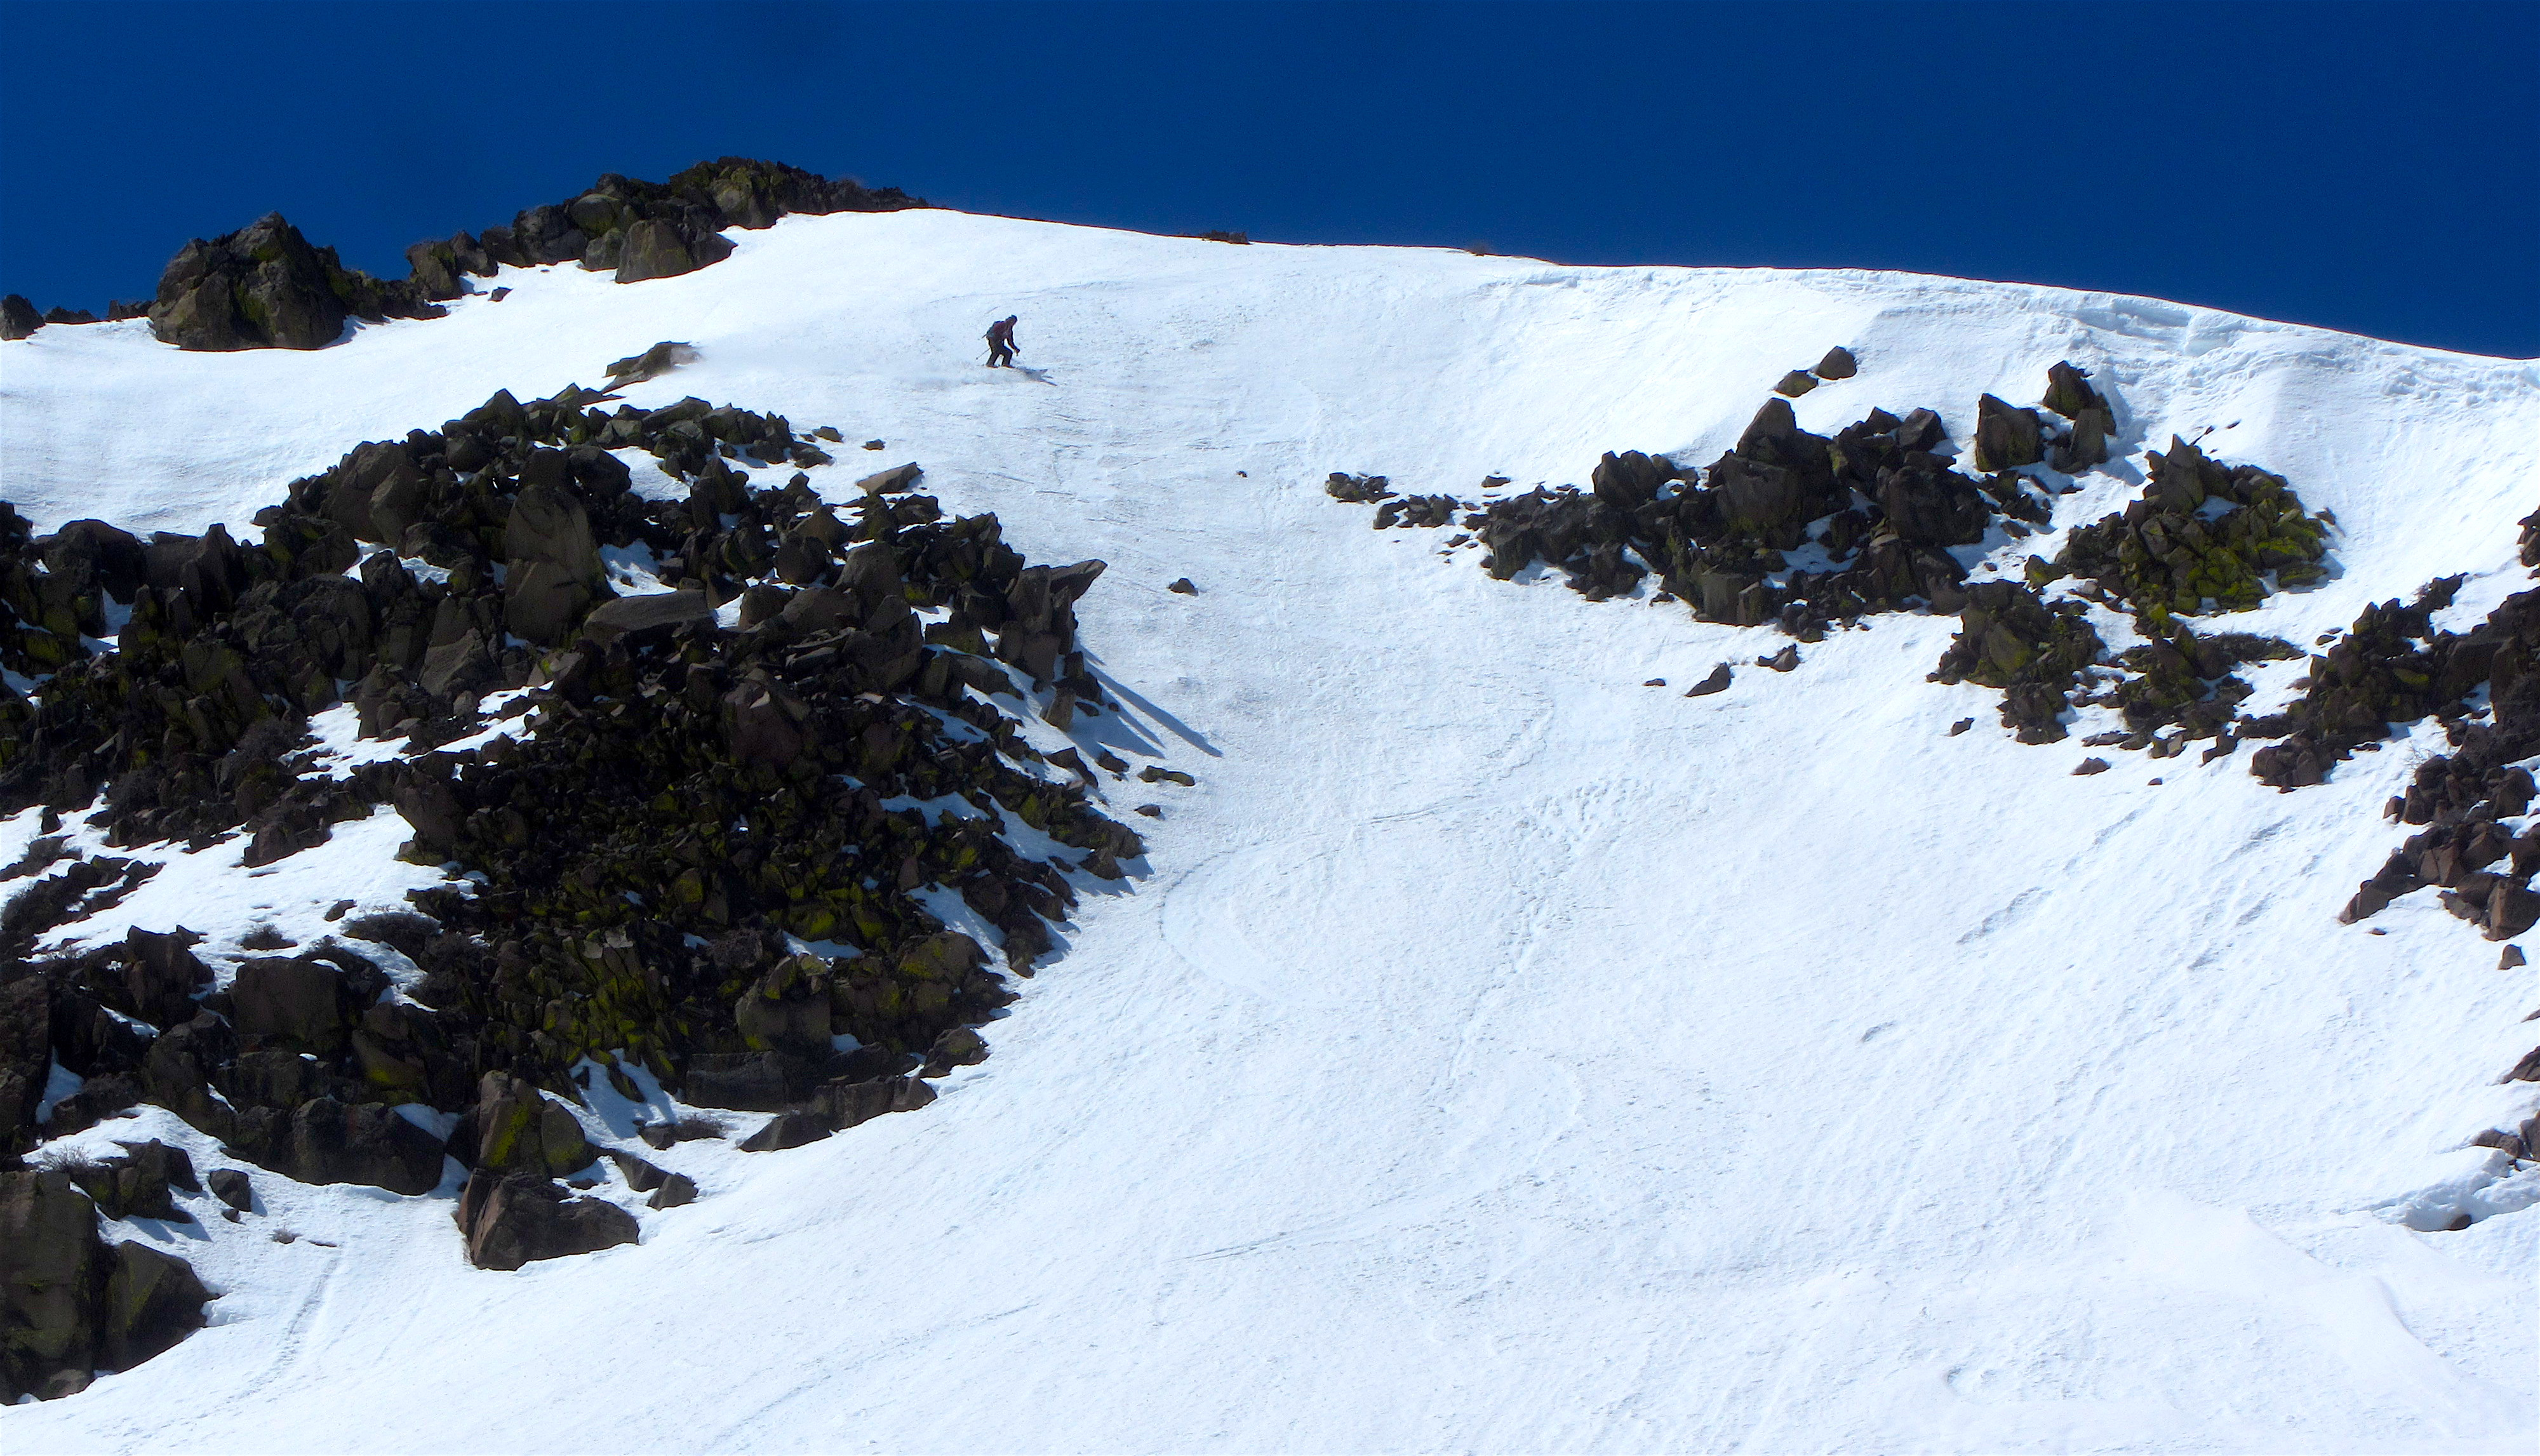 Rick dropping into the Comma Couloir today. photo: miles clark/snowbrains